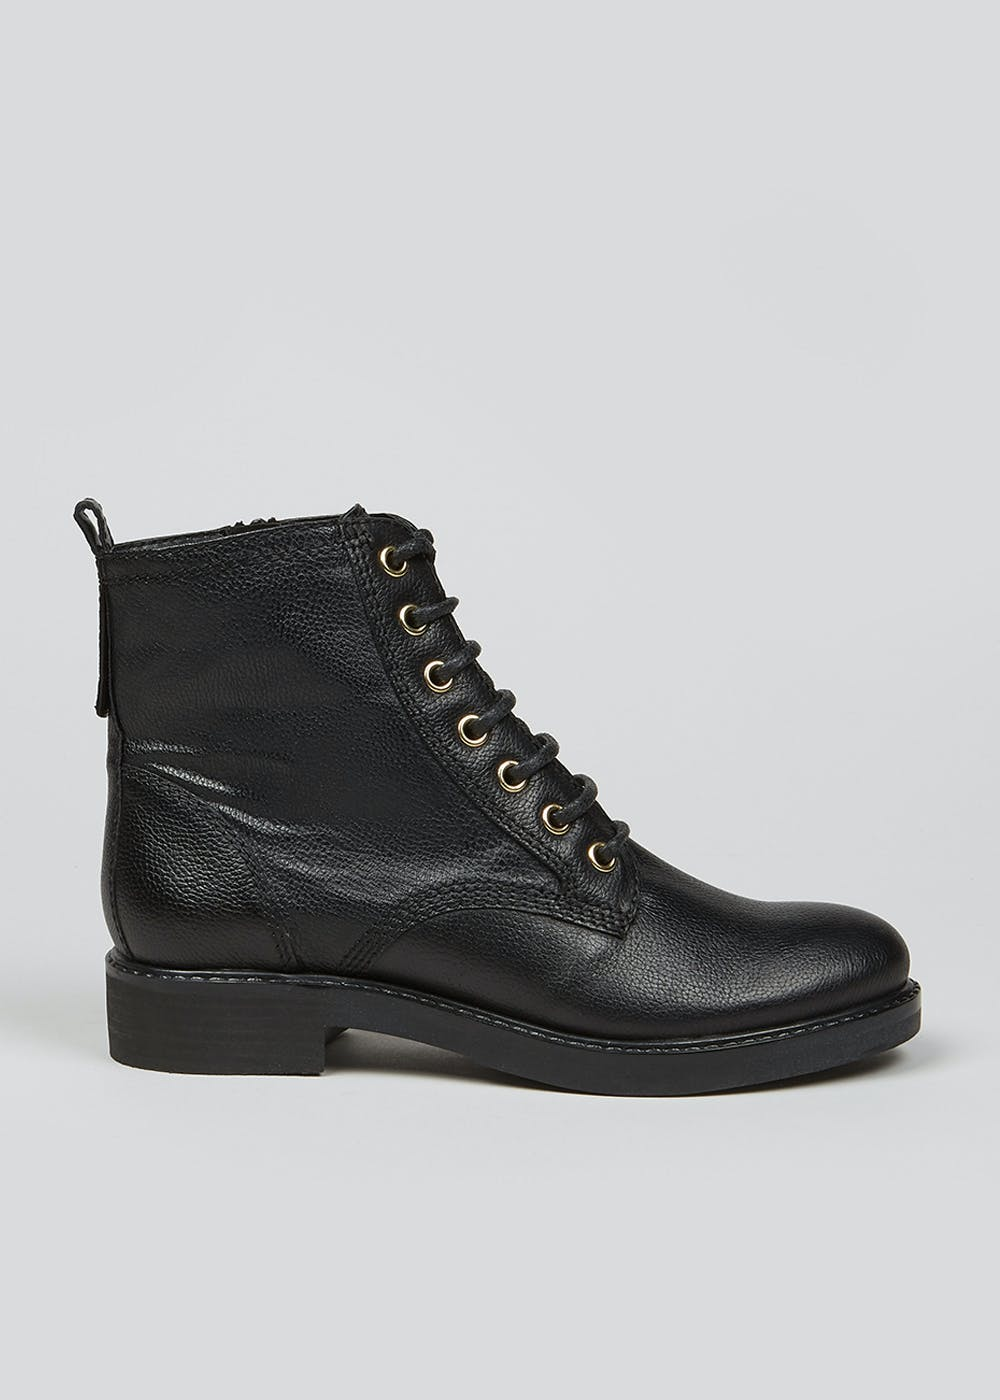 Soleflex Real Leather Lace Up Biker